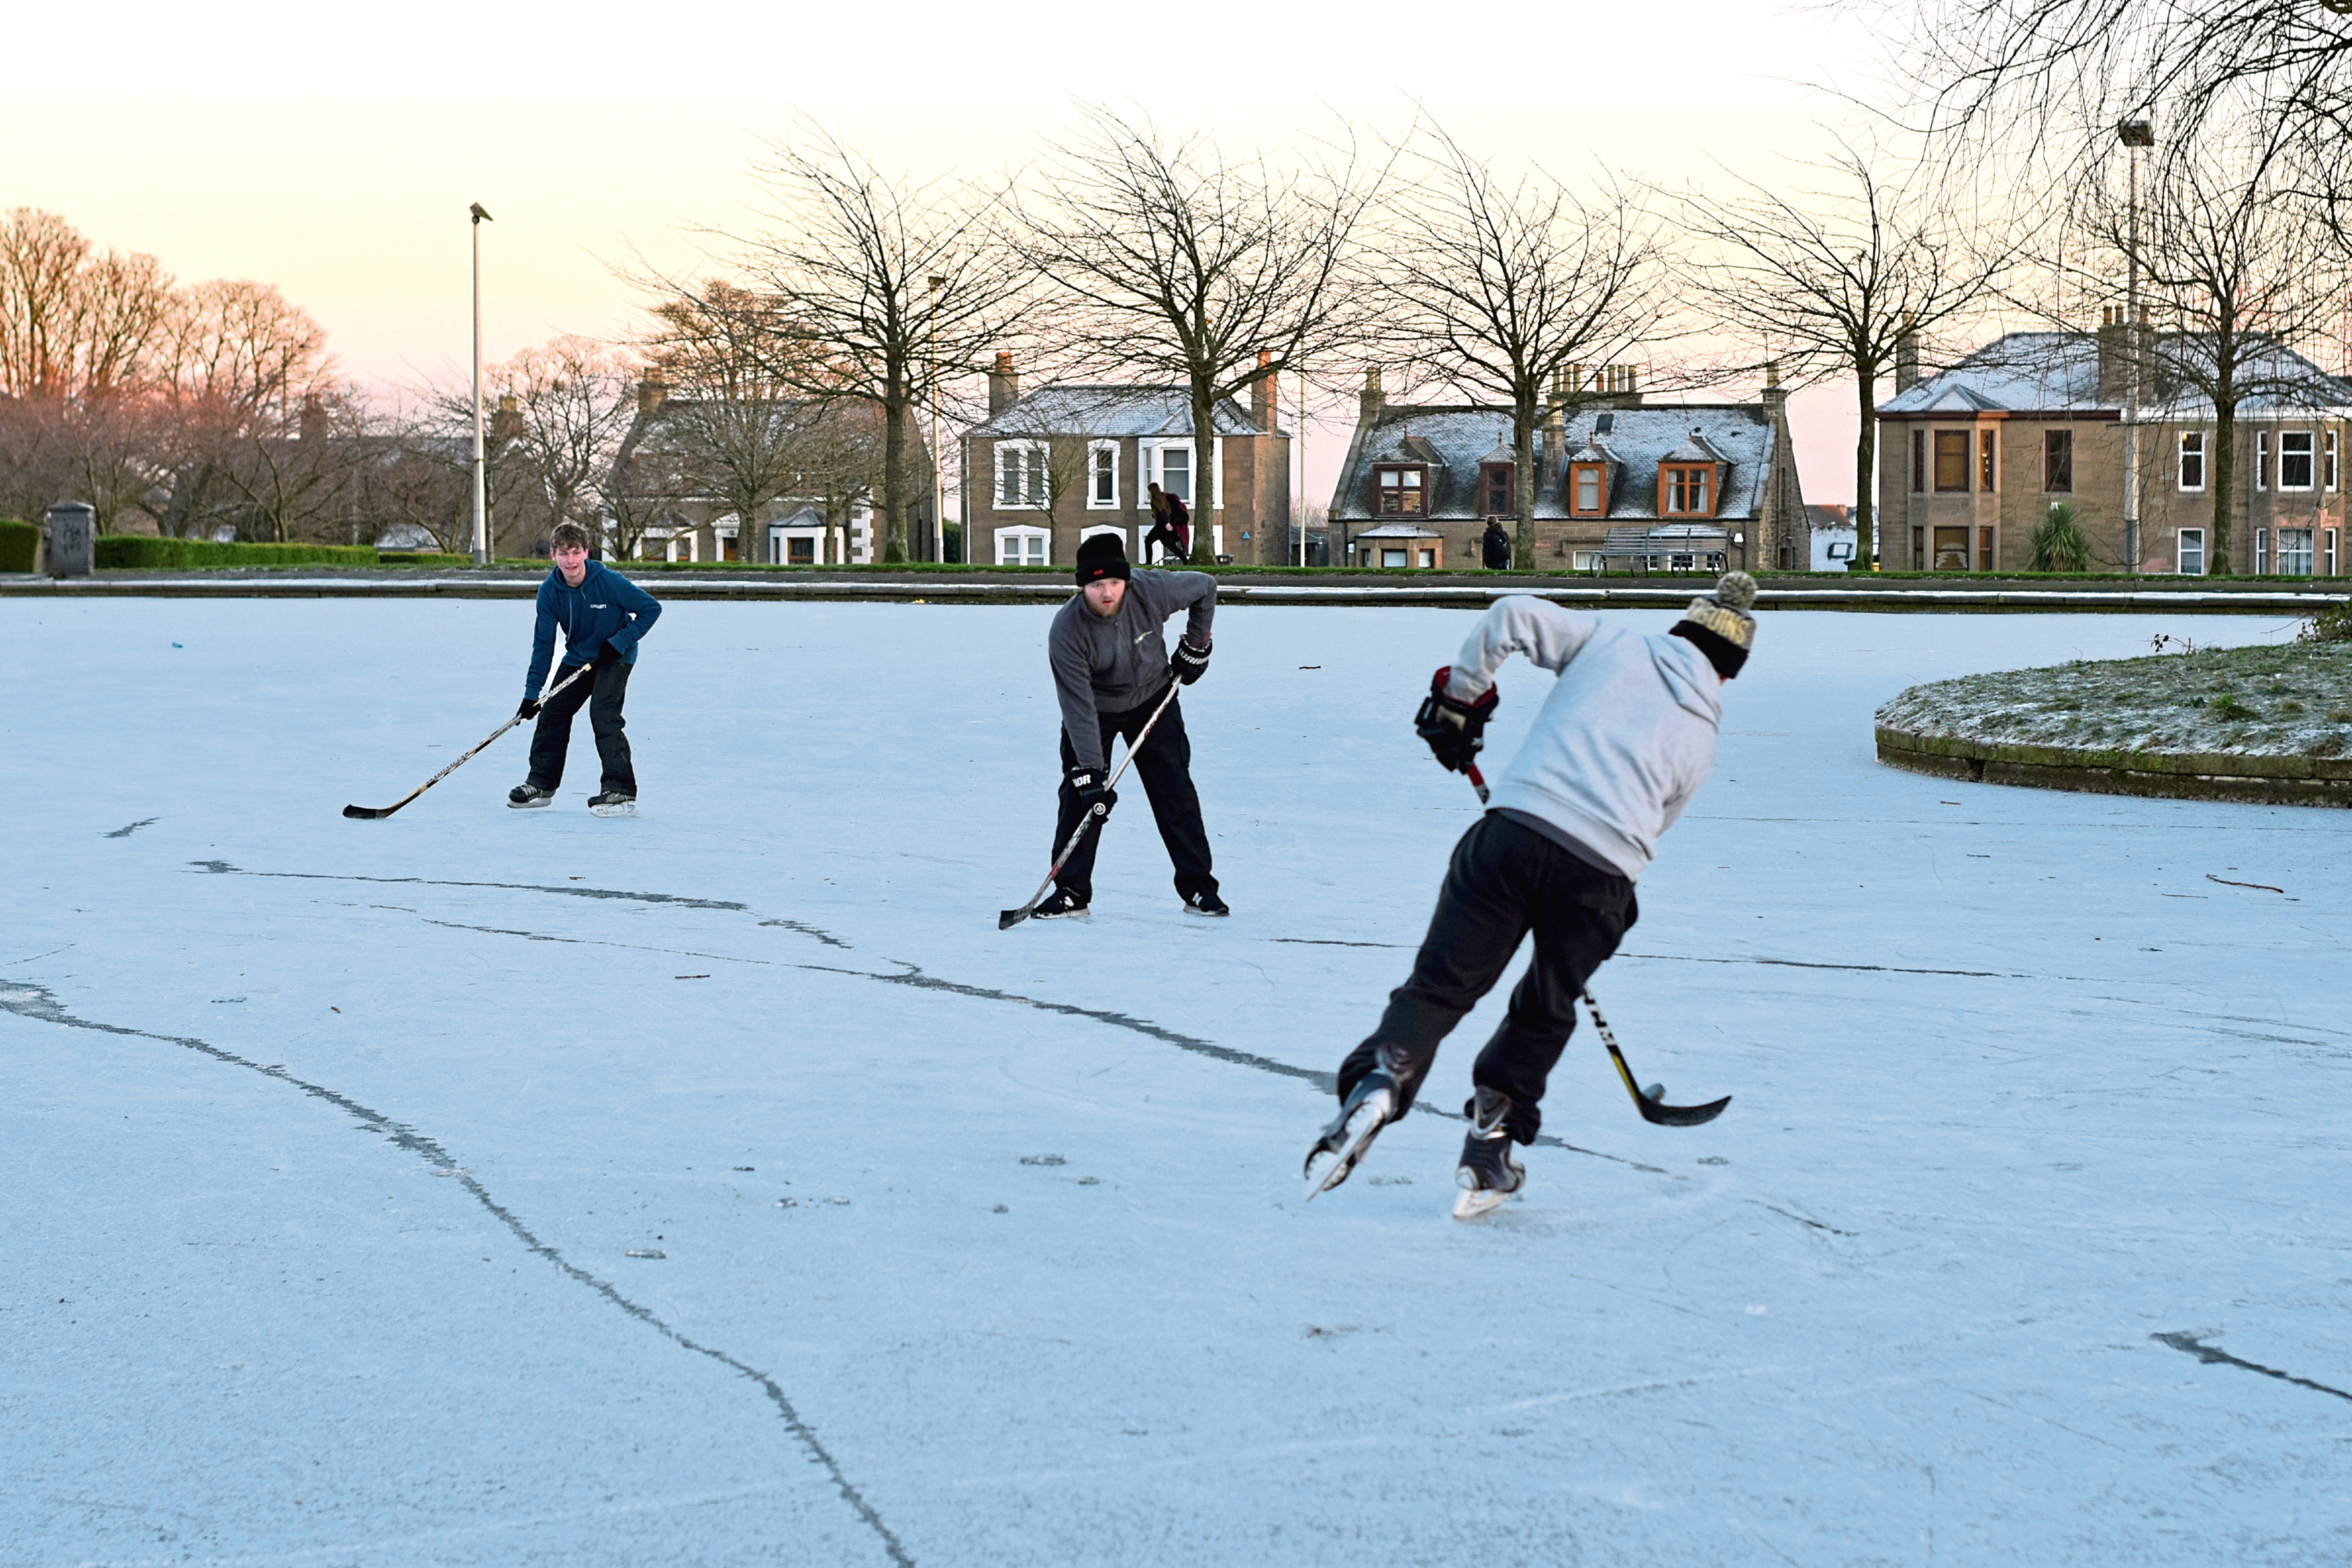 Skaters on the Swannie Ponds, Dundee